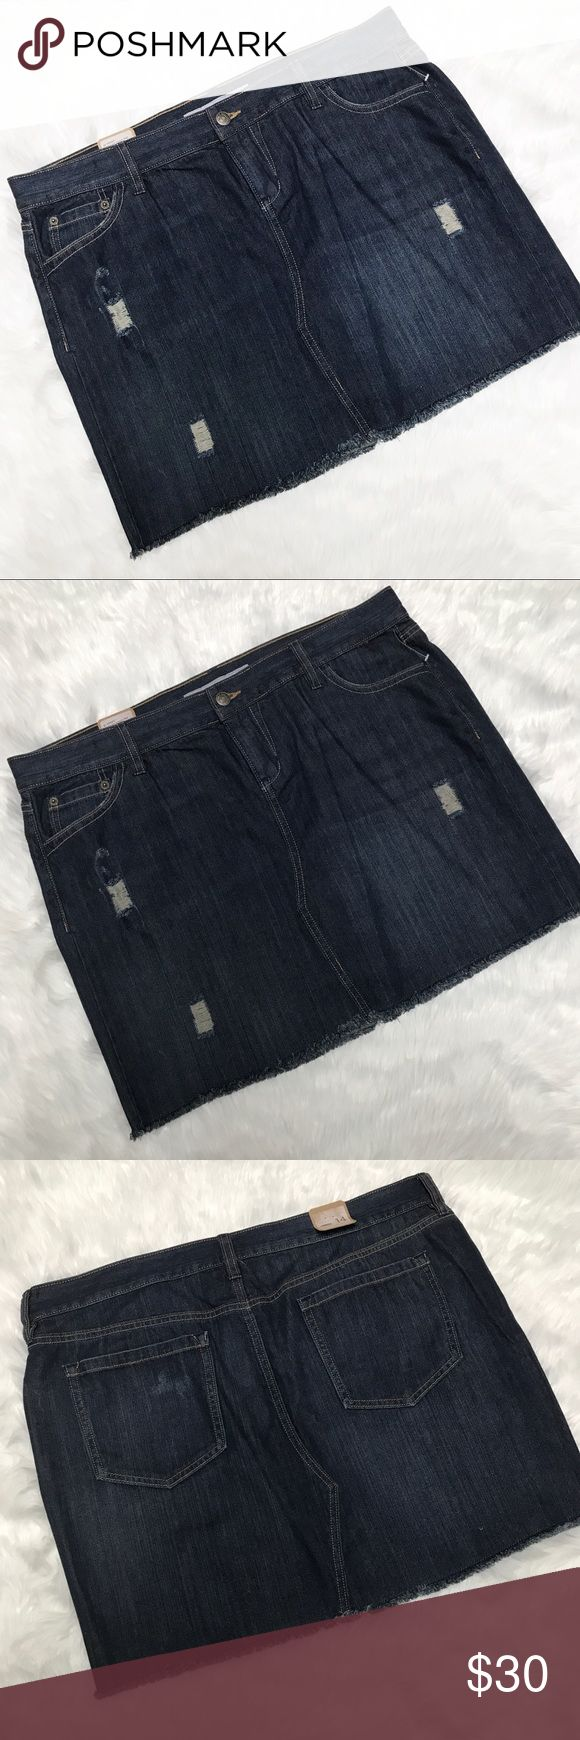 Old Navy • Denim Skirt NWT, Old Navy Denim Skirt with distressing. Perfect skirt for any season, can be dressed up with heels or down with sneakers! Size 14. 1022GWB449 Old Navy Skirts